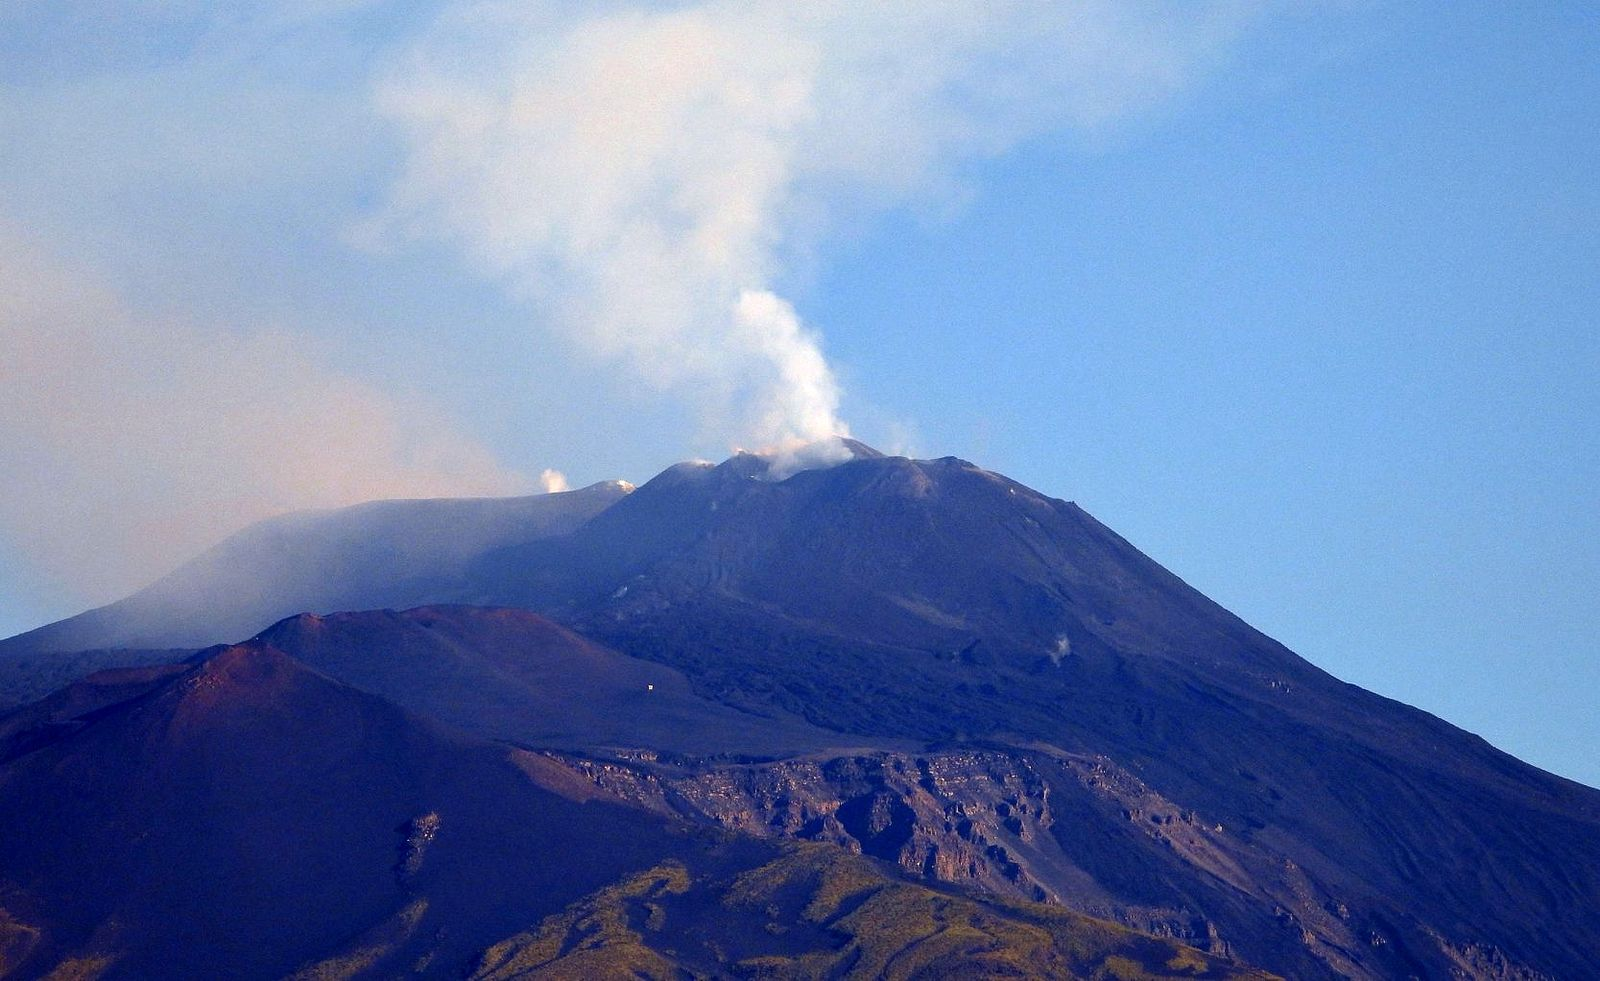 Etna - degassing on 21.07.2020 / 08h00, seen from Tremestieri Etnéo- photo Boris Behncke